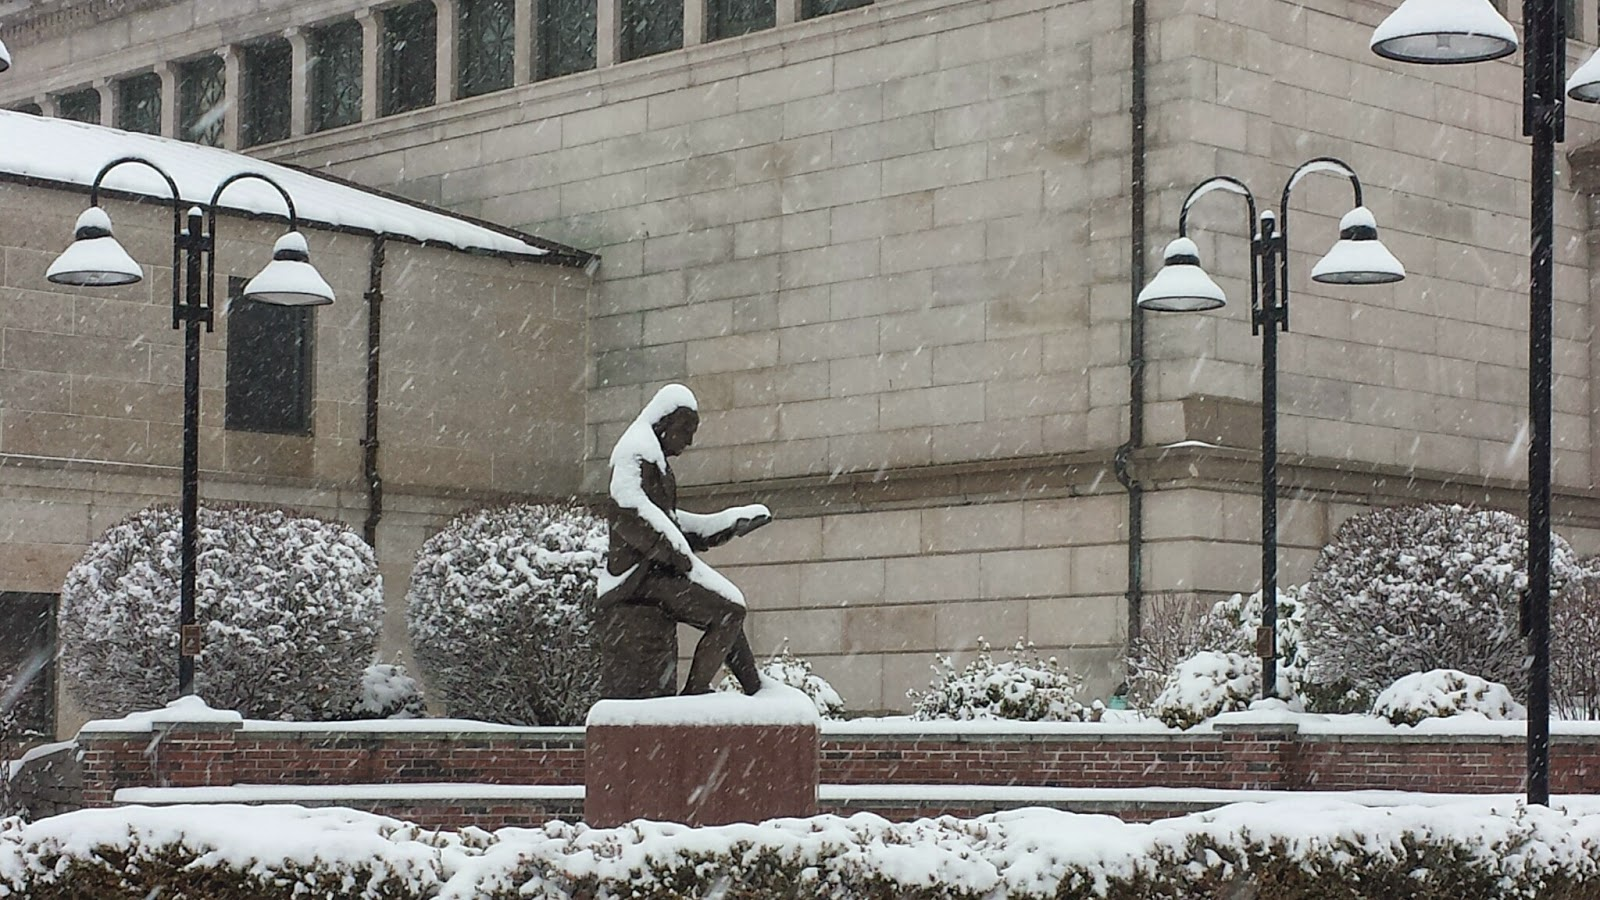 the snow did not keep Ben from reading